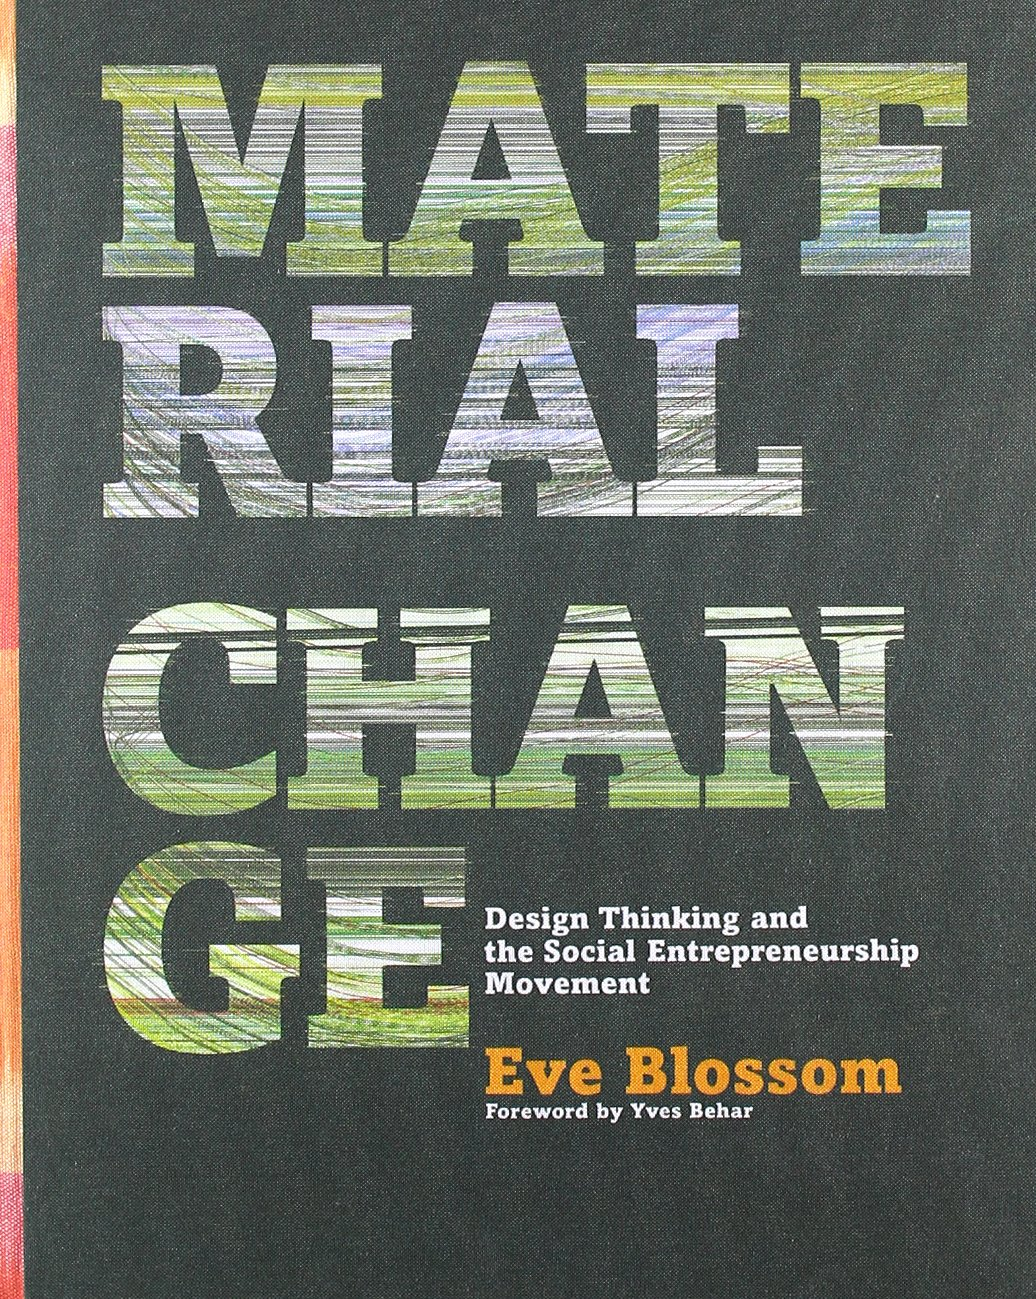 Download Material Change: Design Thinking and the Social Entrepreneurship Movement pdf